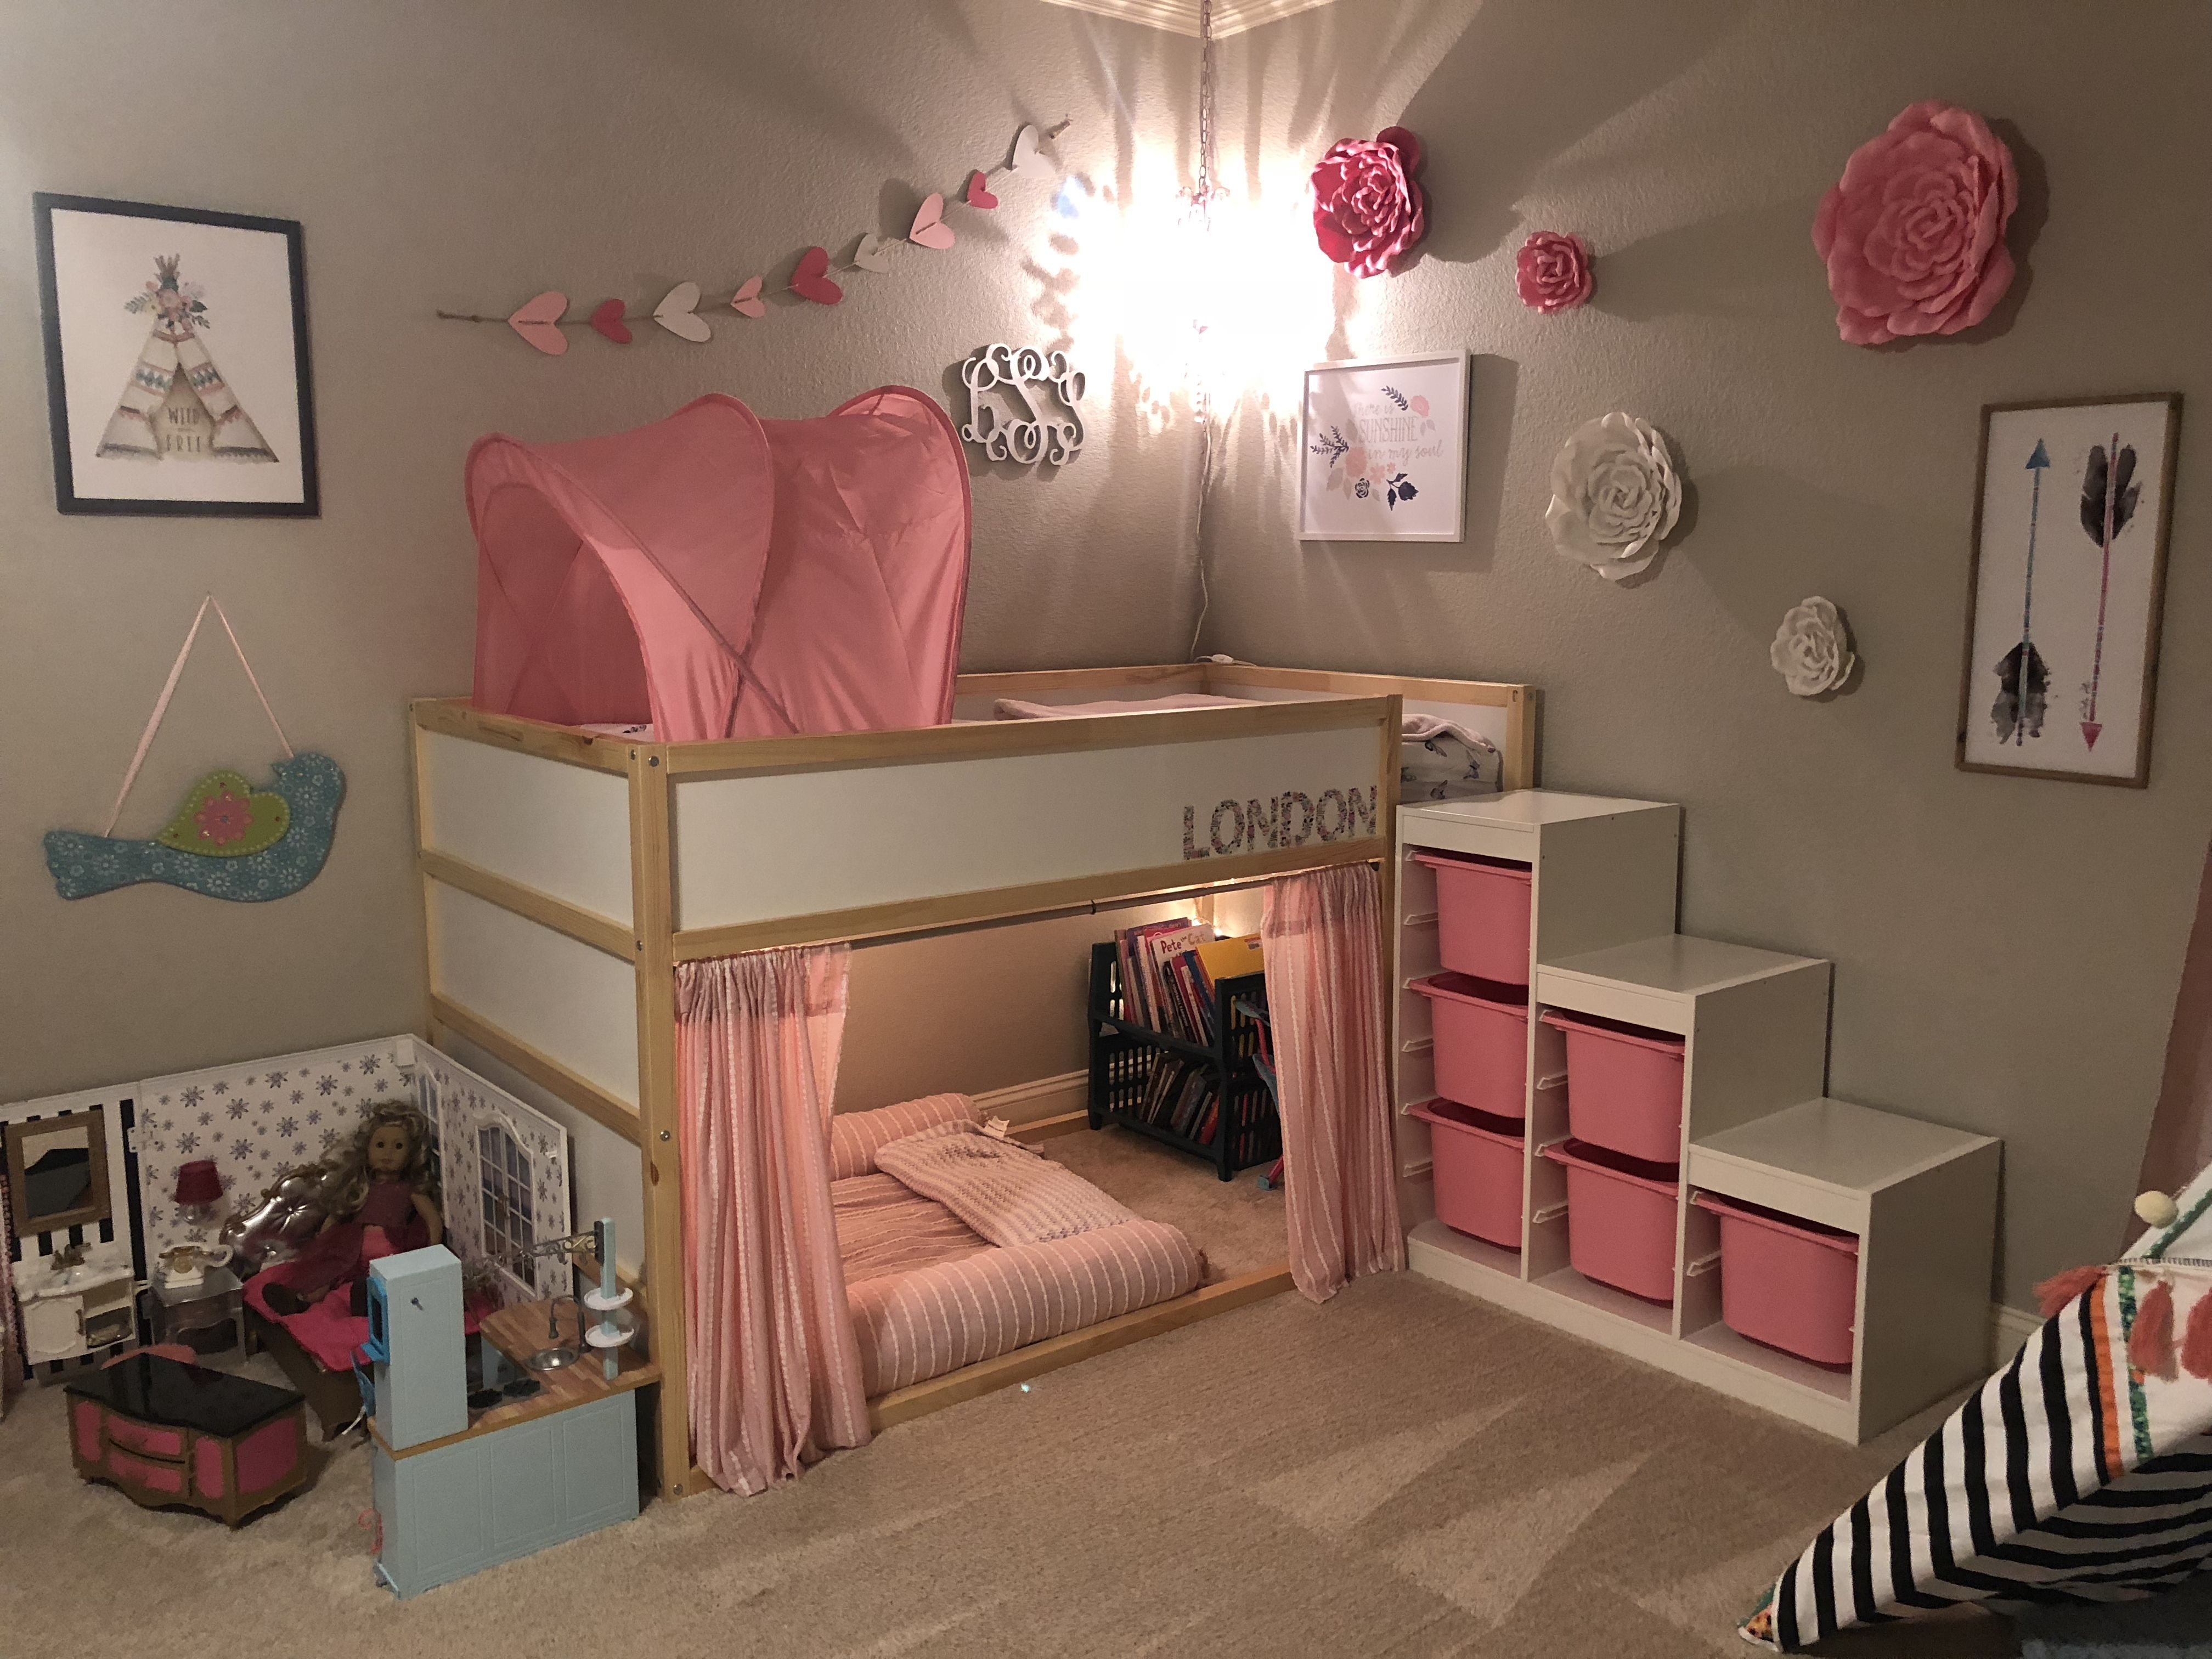 Ikea Kura Bed For London Is Finally Finished Kids Loft Beds Toddler Bedrooms Ikea Kids Bedroom